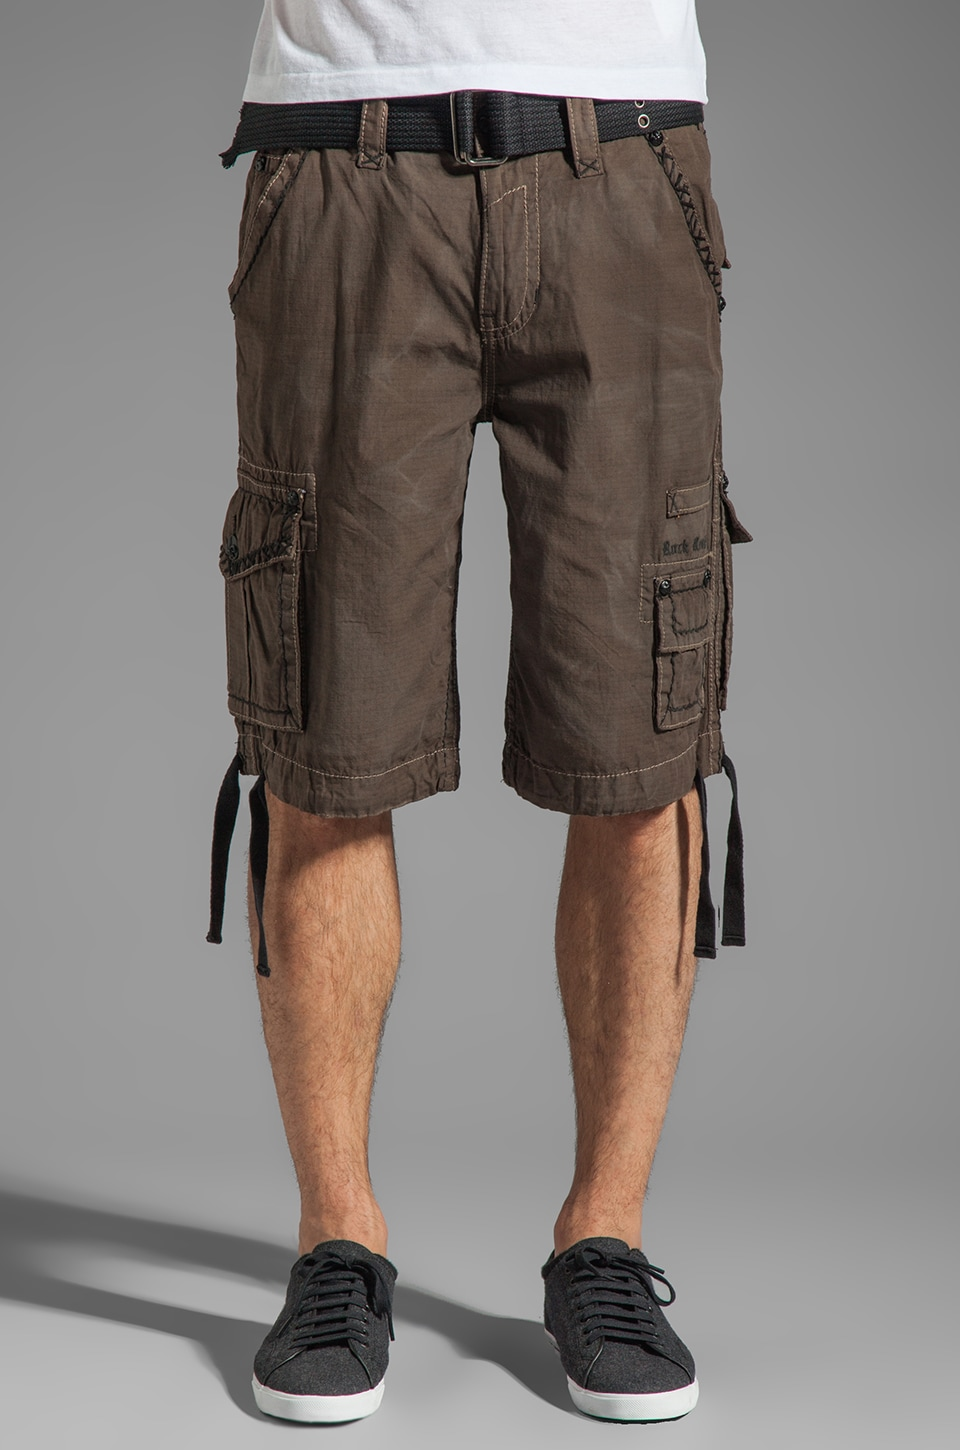 Rock Revival Cargo Short in Brown